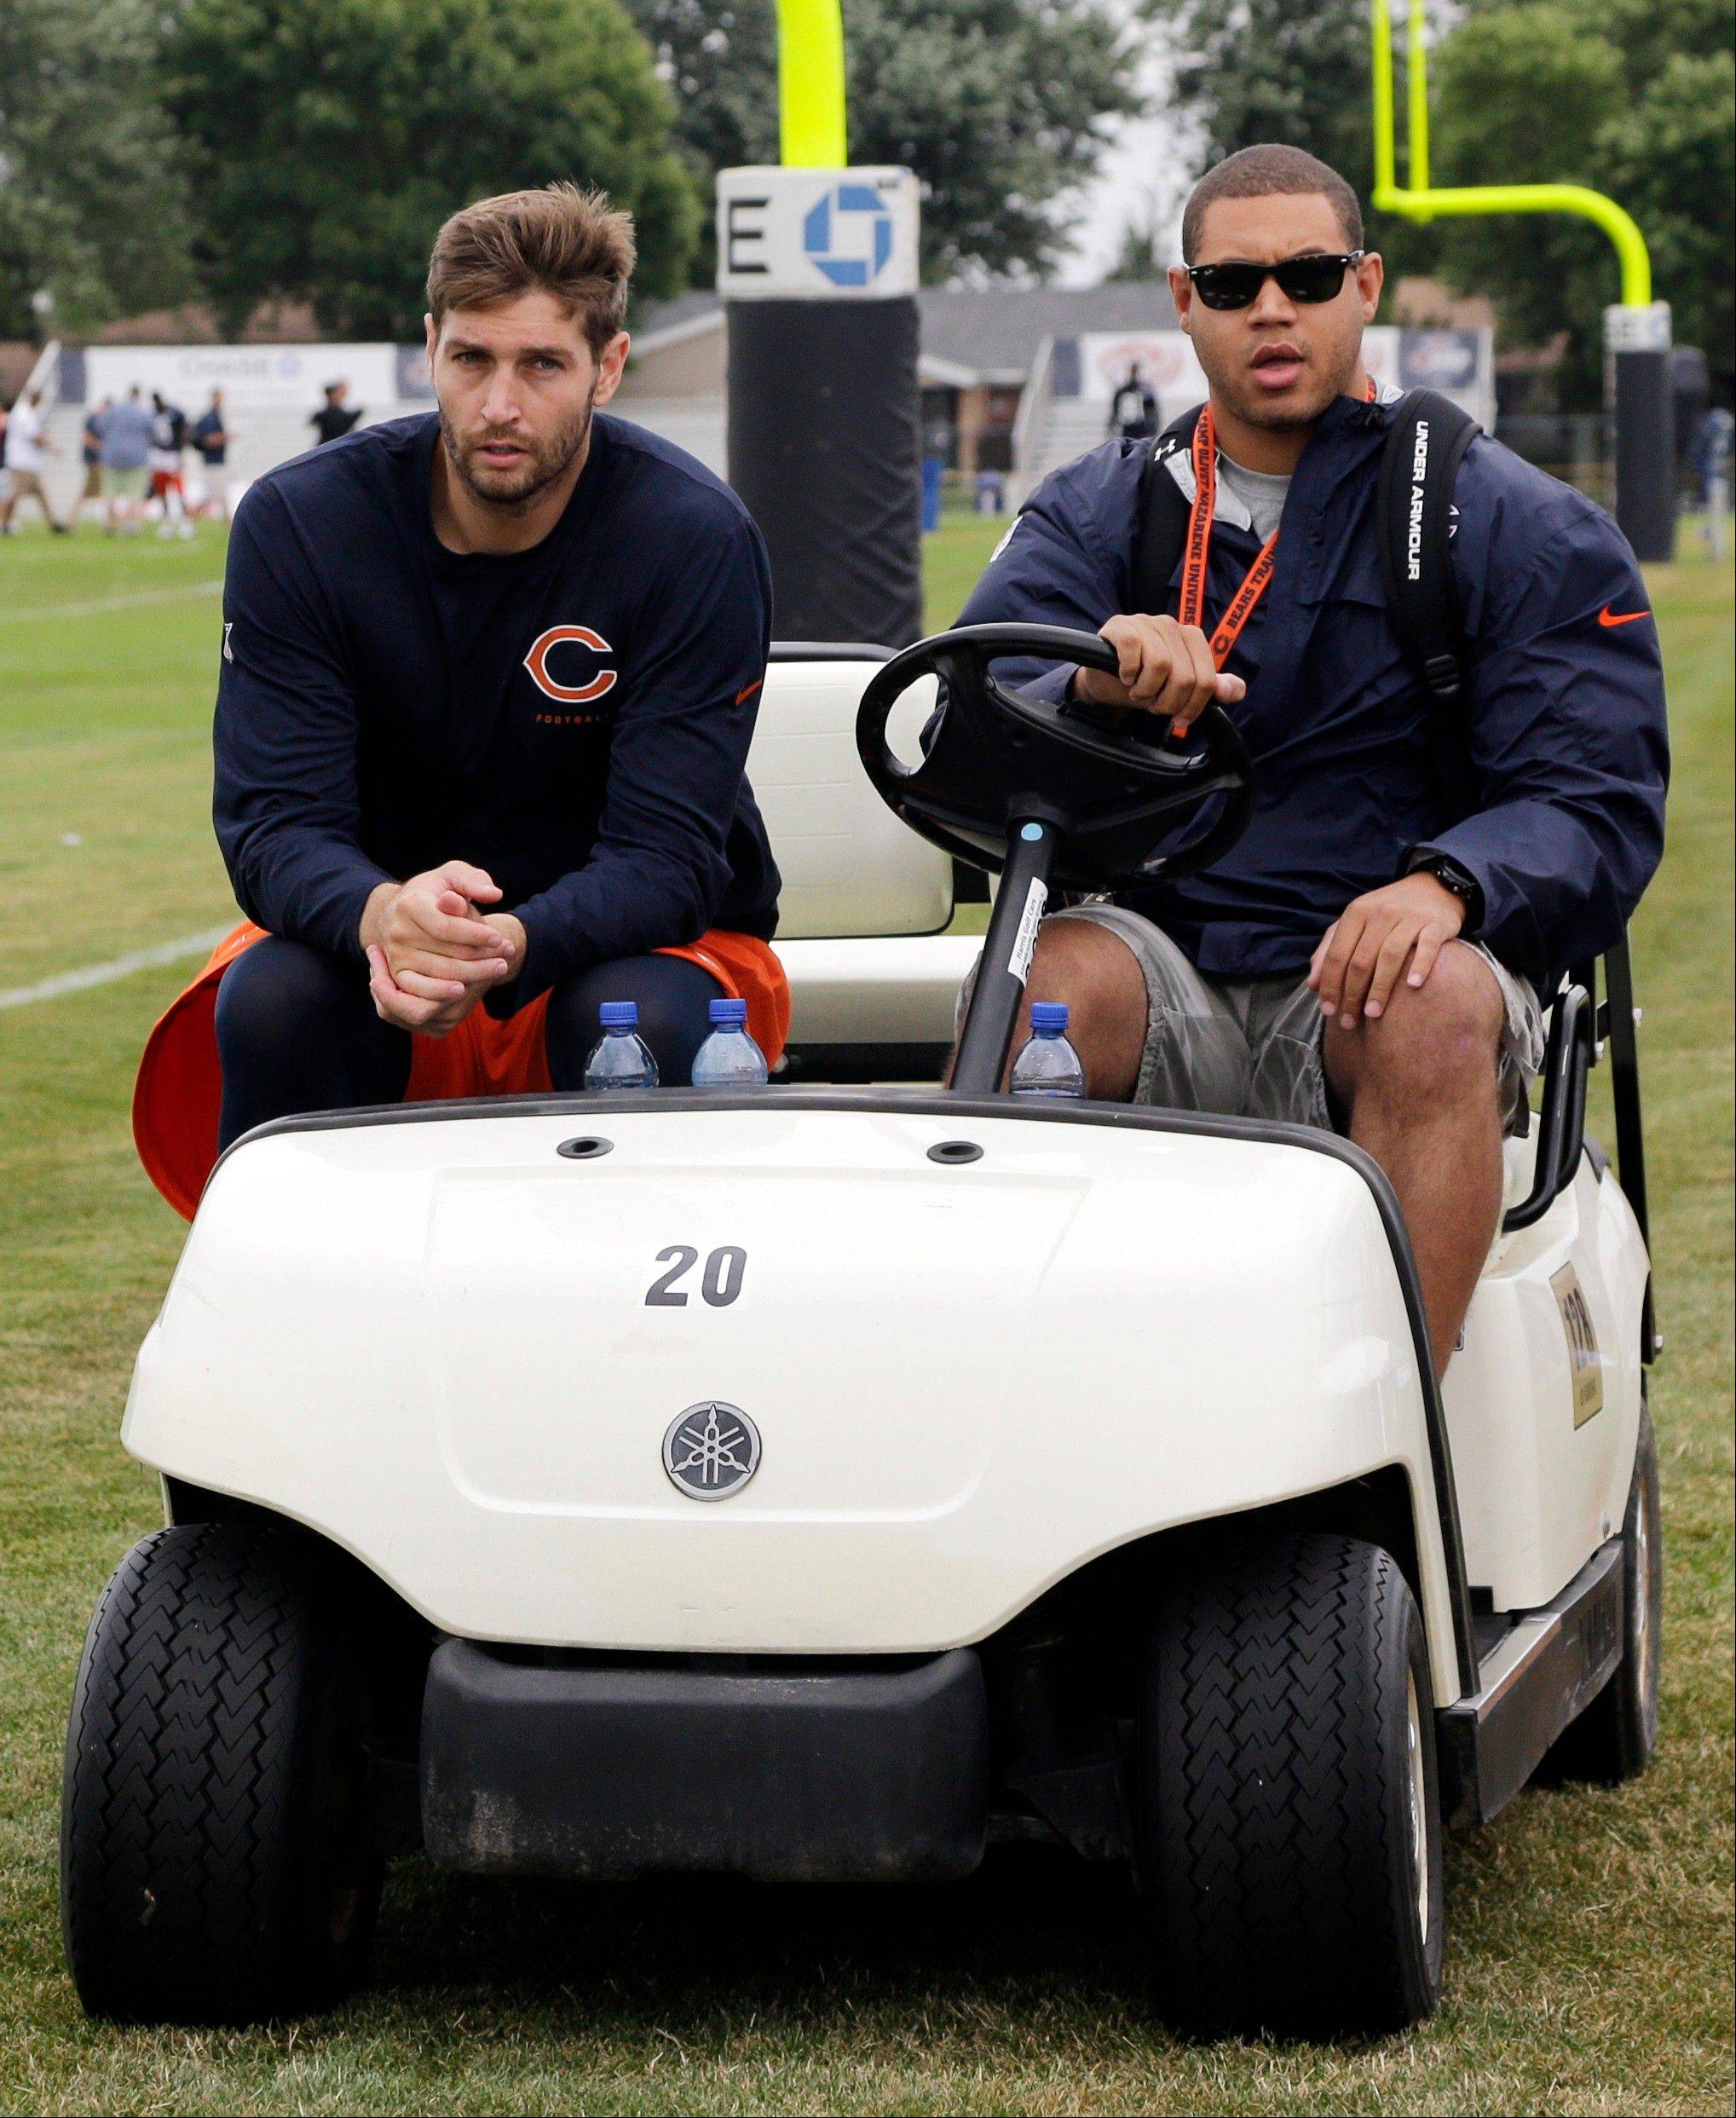 Chicago Bears quarterback Jay Cutler, left, leaves with media relations assistant Jared Ellerson.